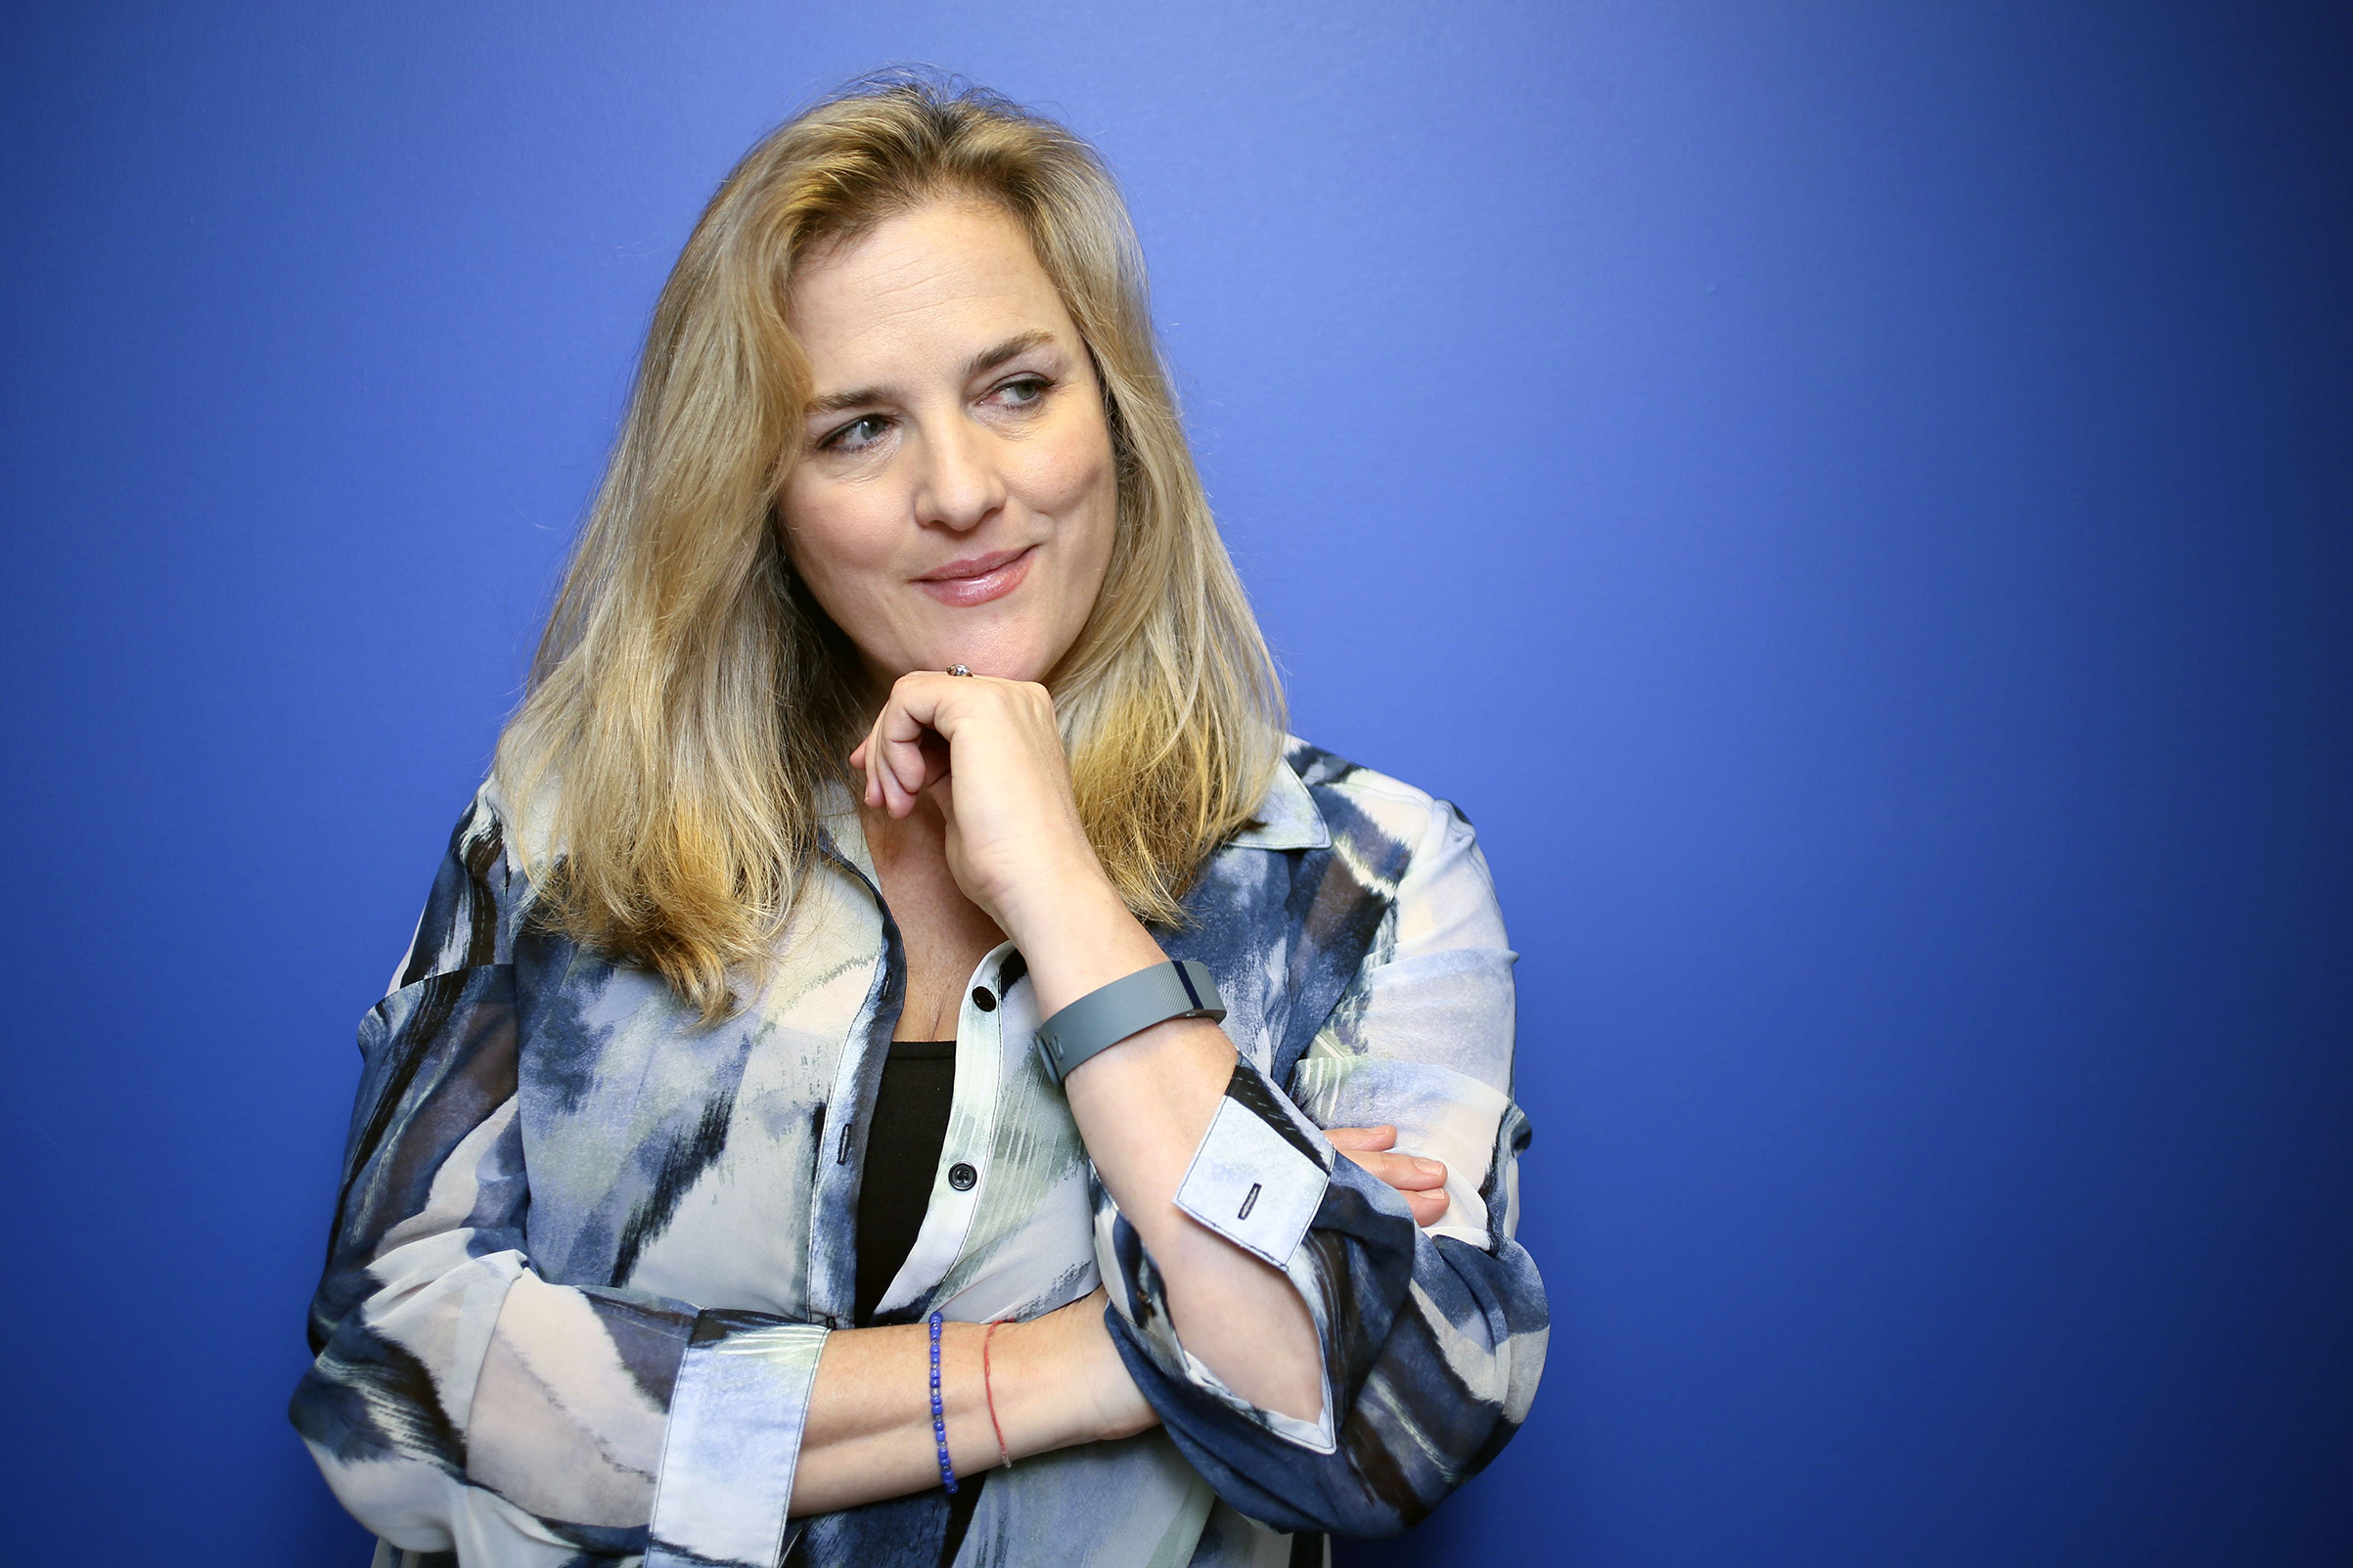 Journalist Natasha Stoynoff poses at the Simon & Schuster offices in downtown Toronto, Jan. 18, 2017.